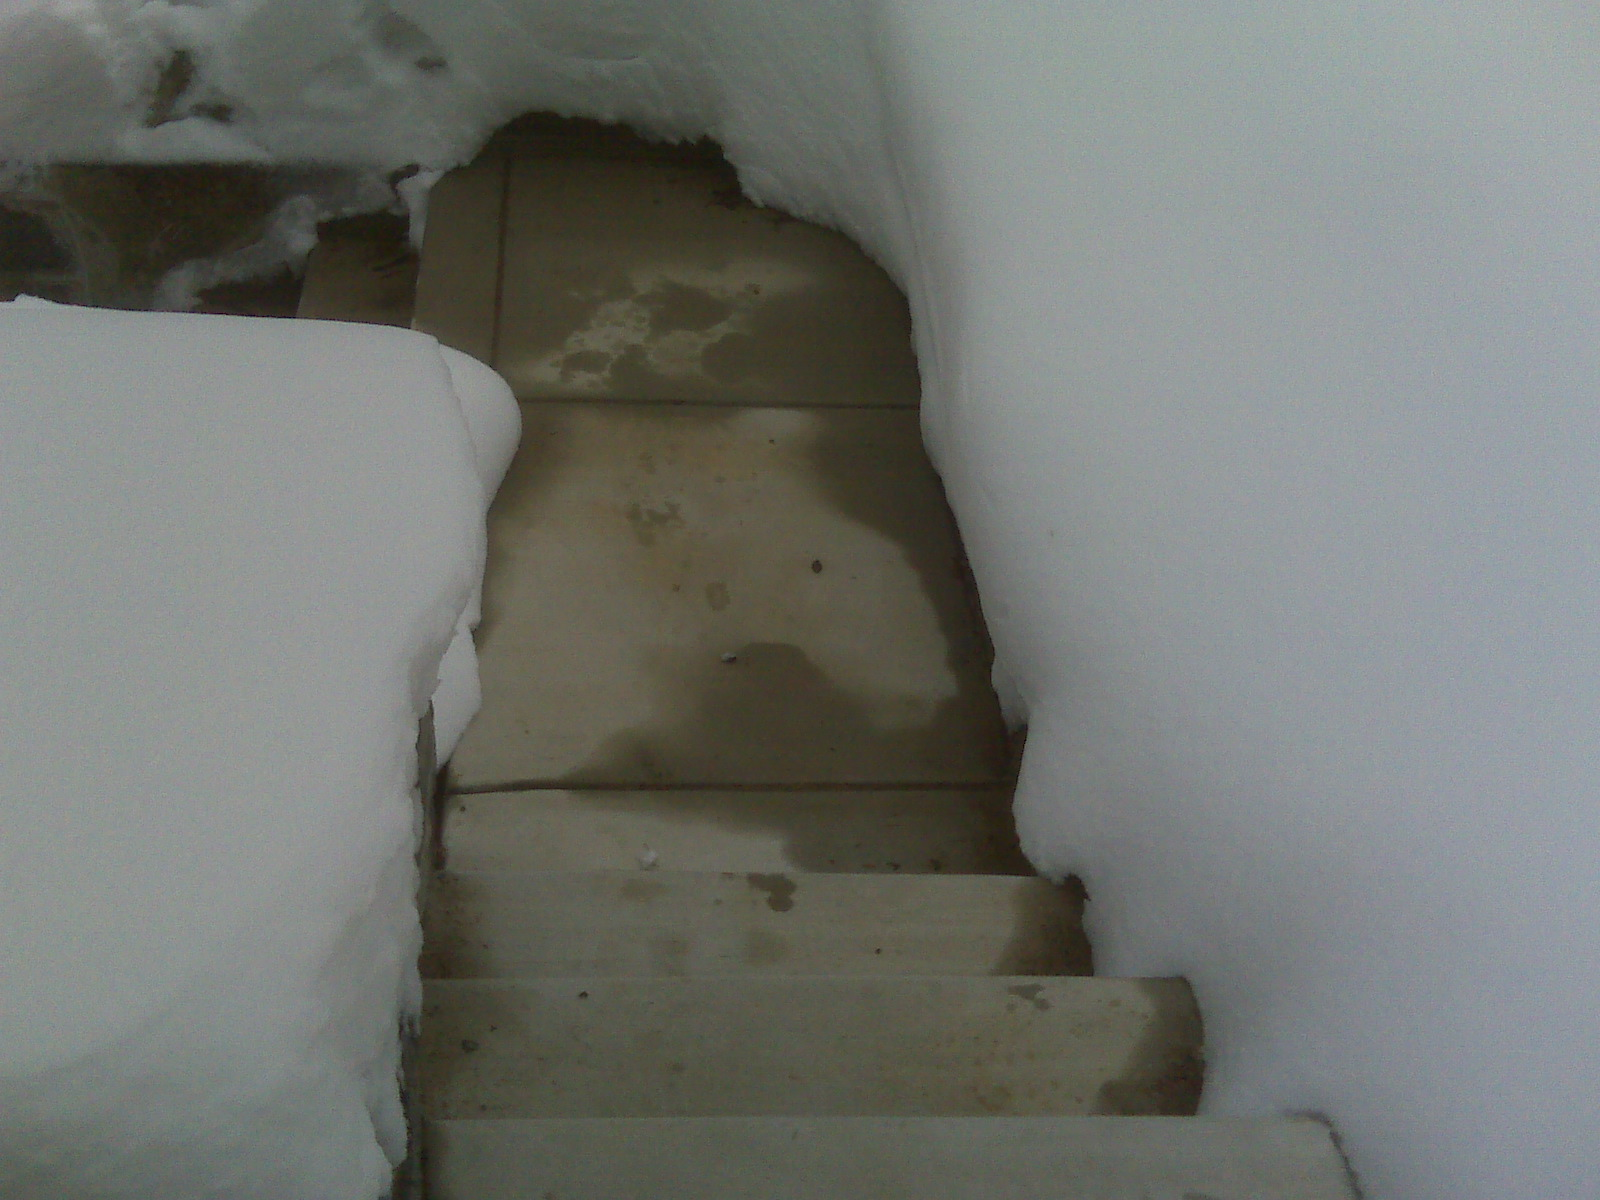 PA_30inch_Snow_Stairs.jpg